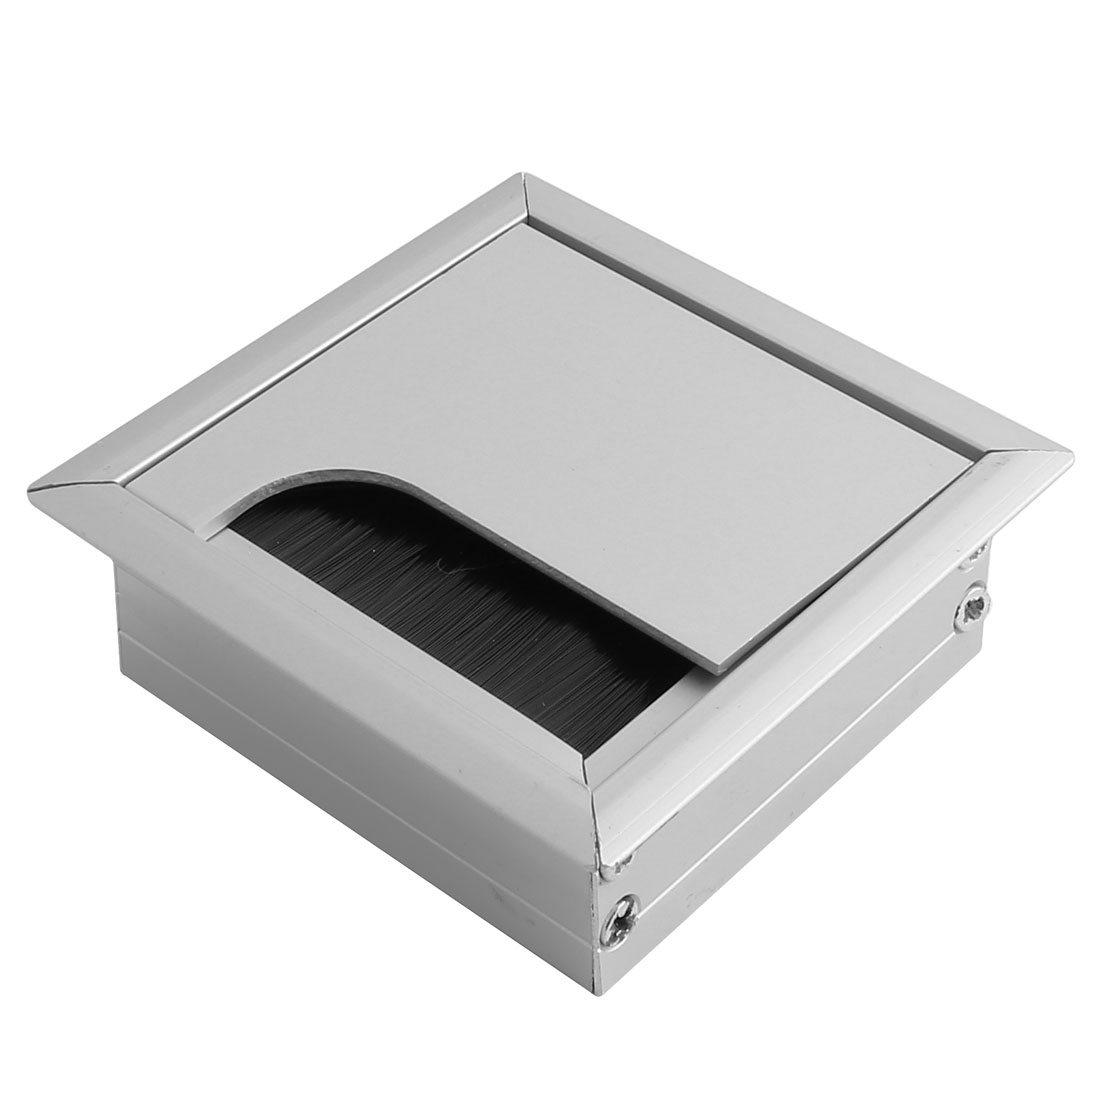 uxcell color pc computer metal square brushes desk cable grommets wire hole cover silver tone silver